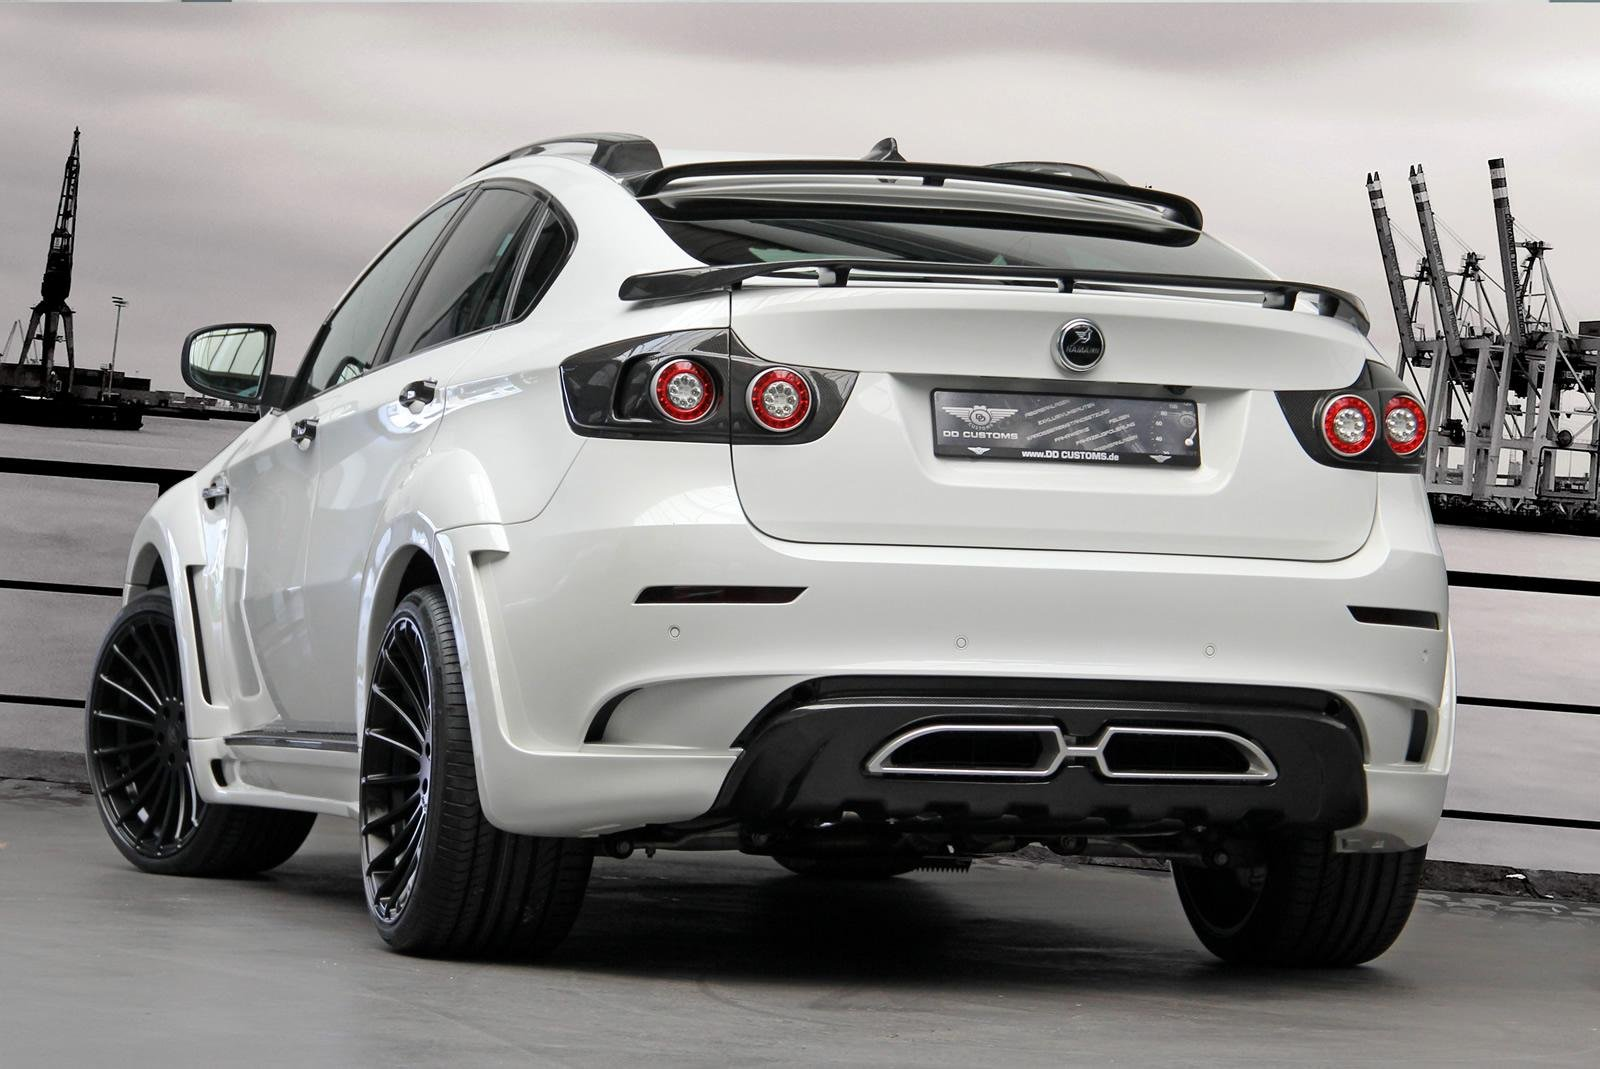 bmw x6 m dd customs tuning suv cars wallpaper 1600x1069 475088 wallpaperup. Black Bedroom Furniture Sets. Home Design Ideas